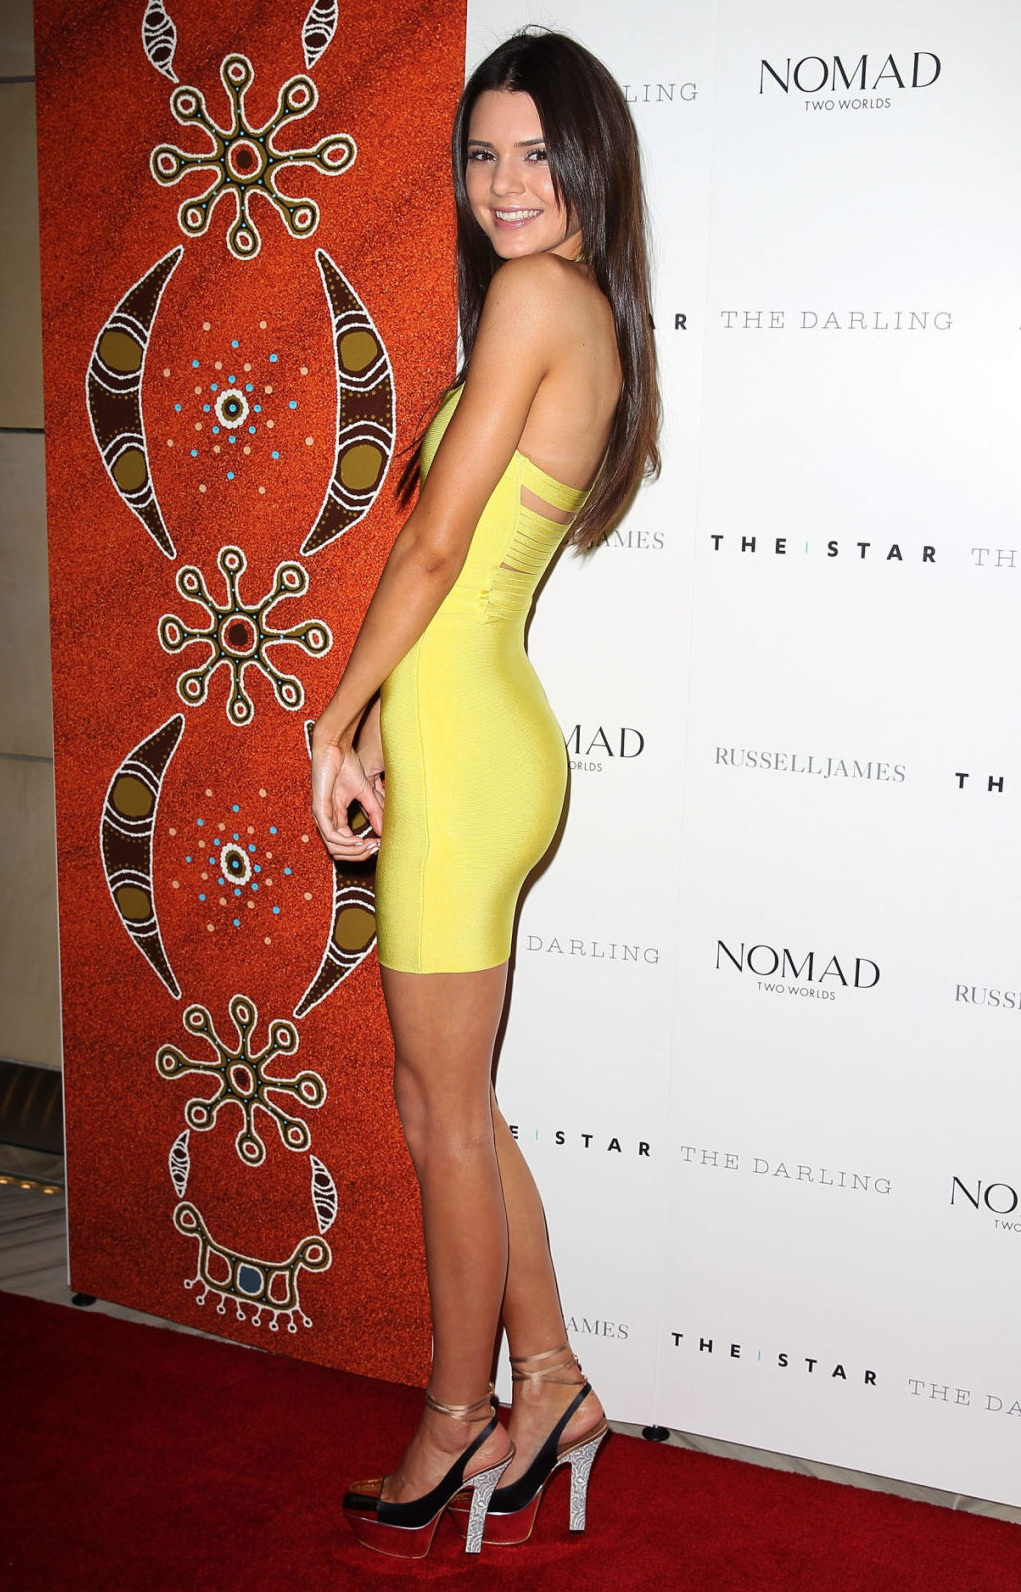 Kendall Jenner - Nomad Two Worlds book launch in Sydney-03 ... Emma Watson Book